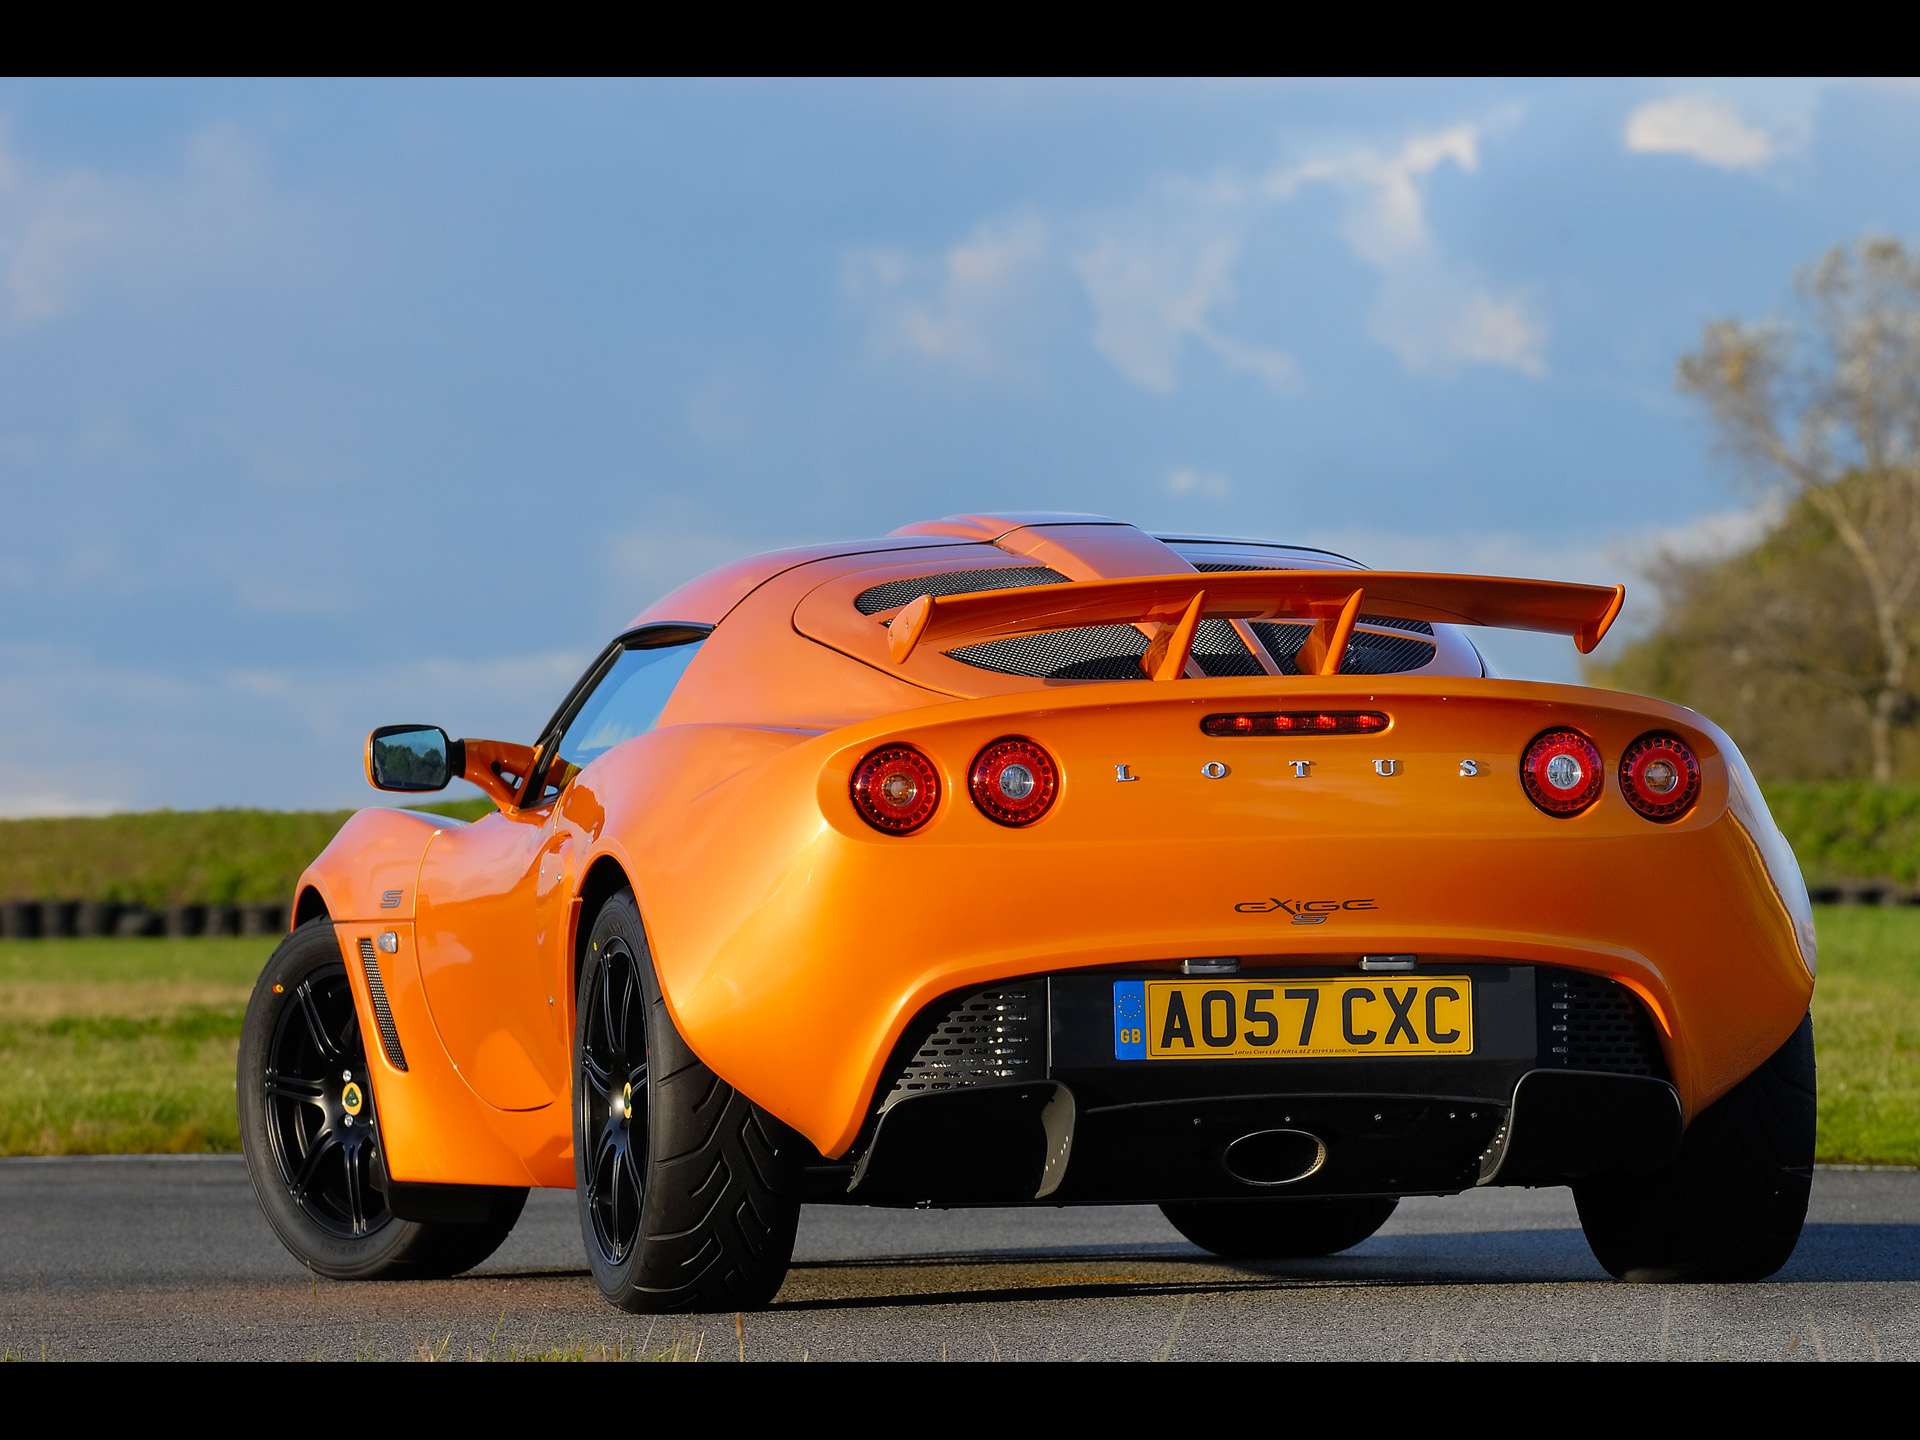 2008-lotus-exige-s-performance-package-rear-angle-1920x1440